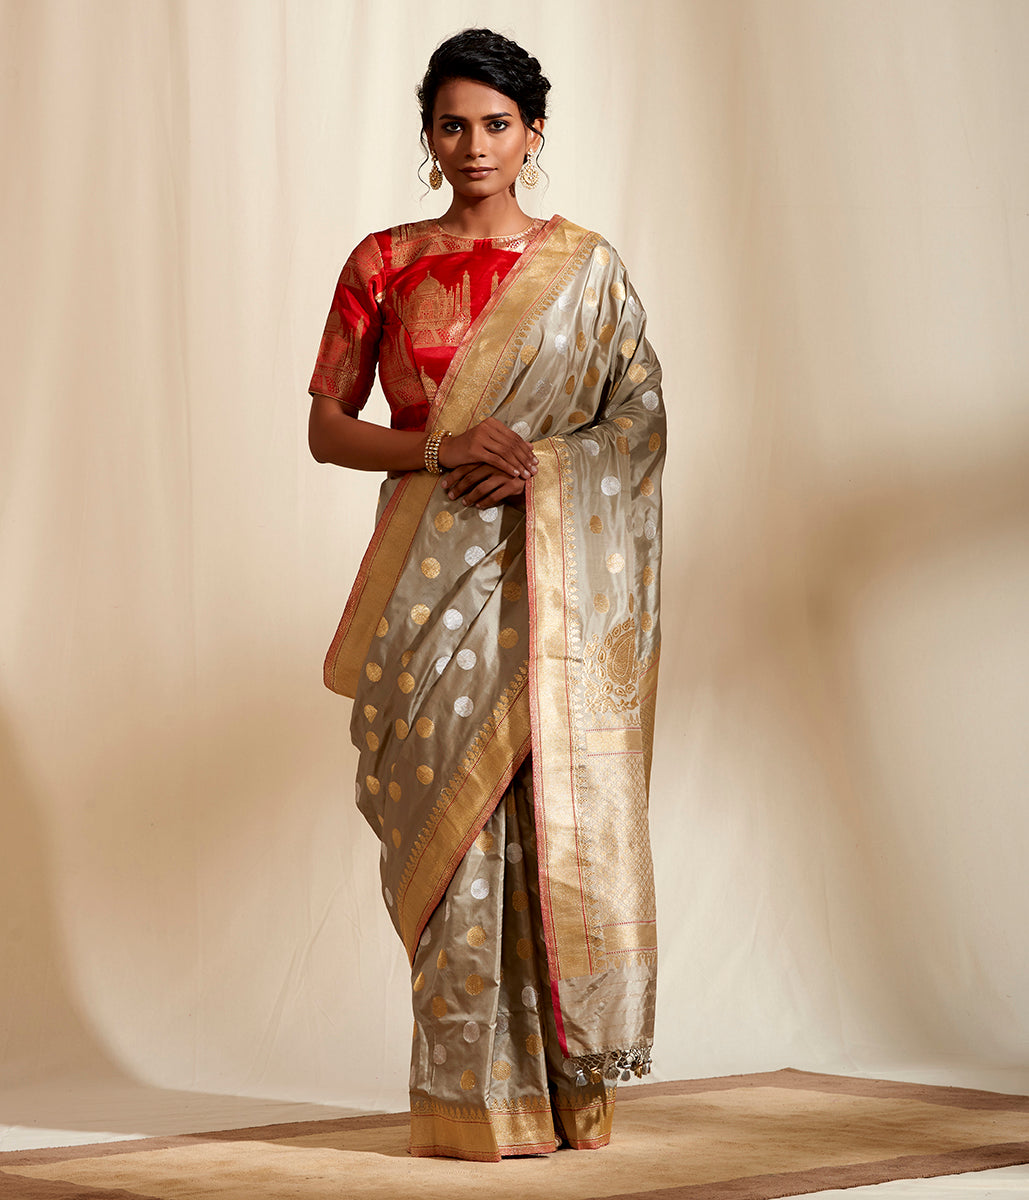 Beige and Grey dual tone Kadhwa banarasi saree with woven asharfi motifs and konia pallu